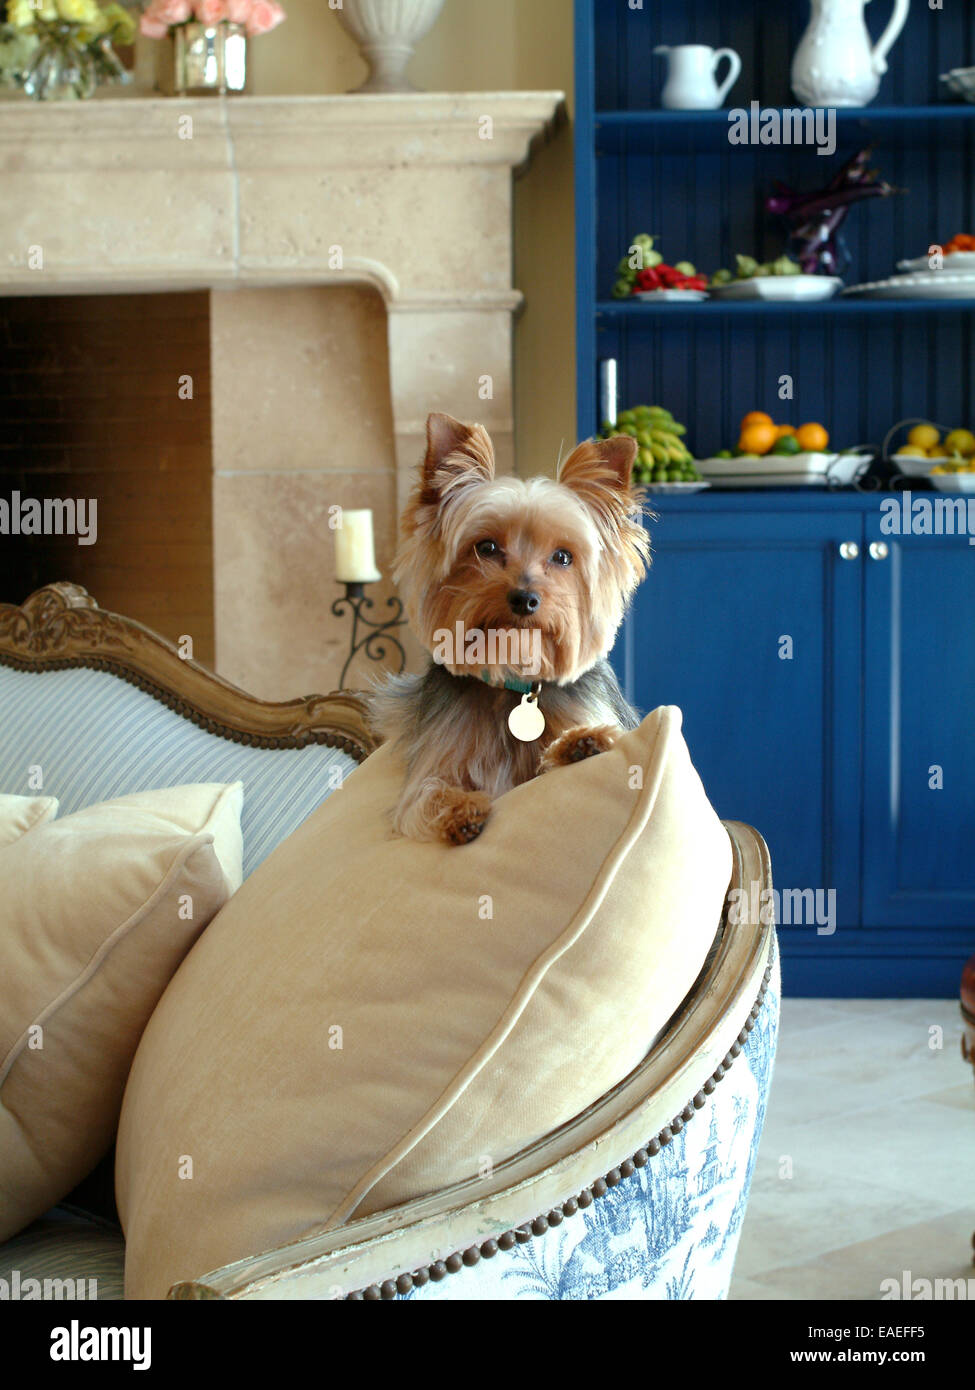 Petit Chien sur la table Photo Stock